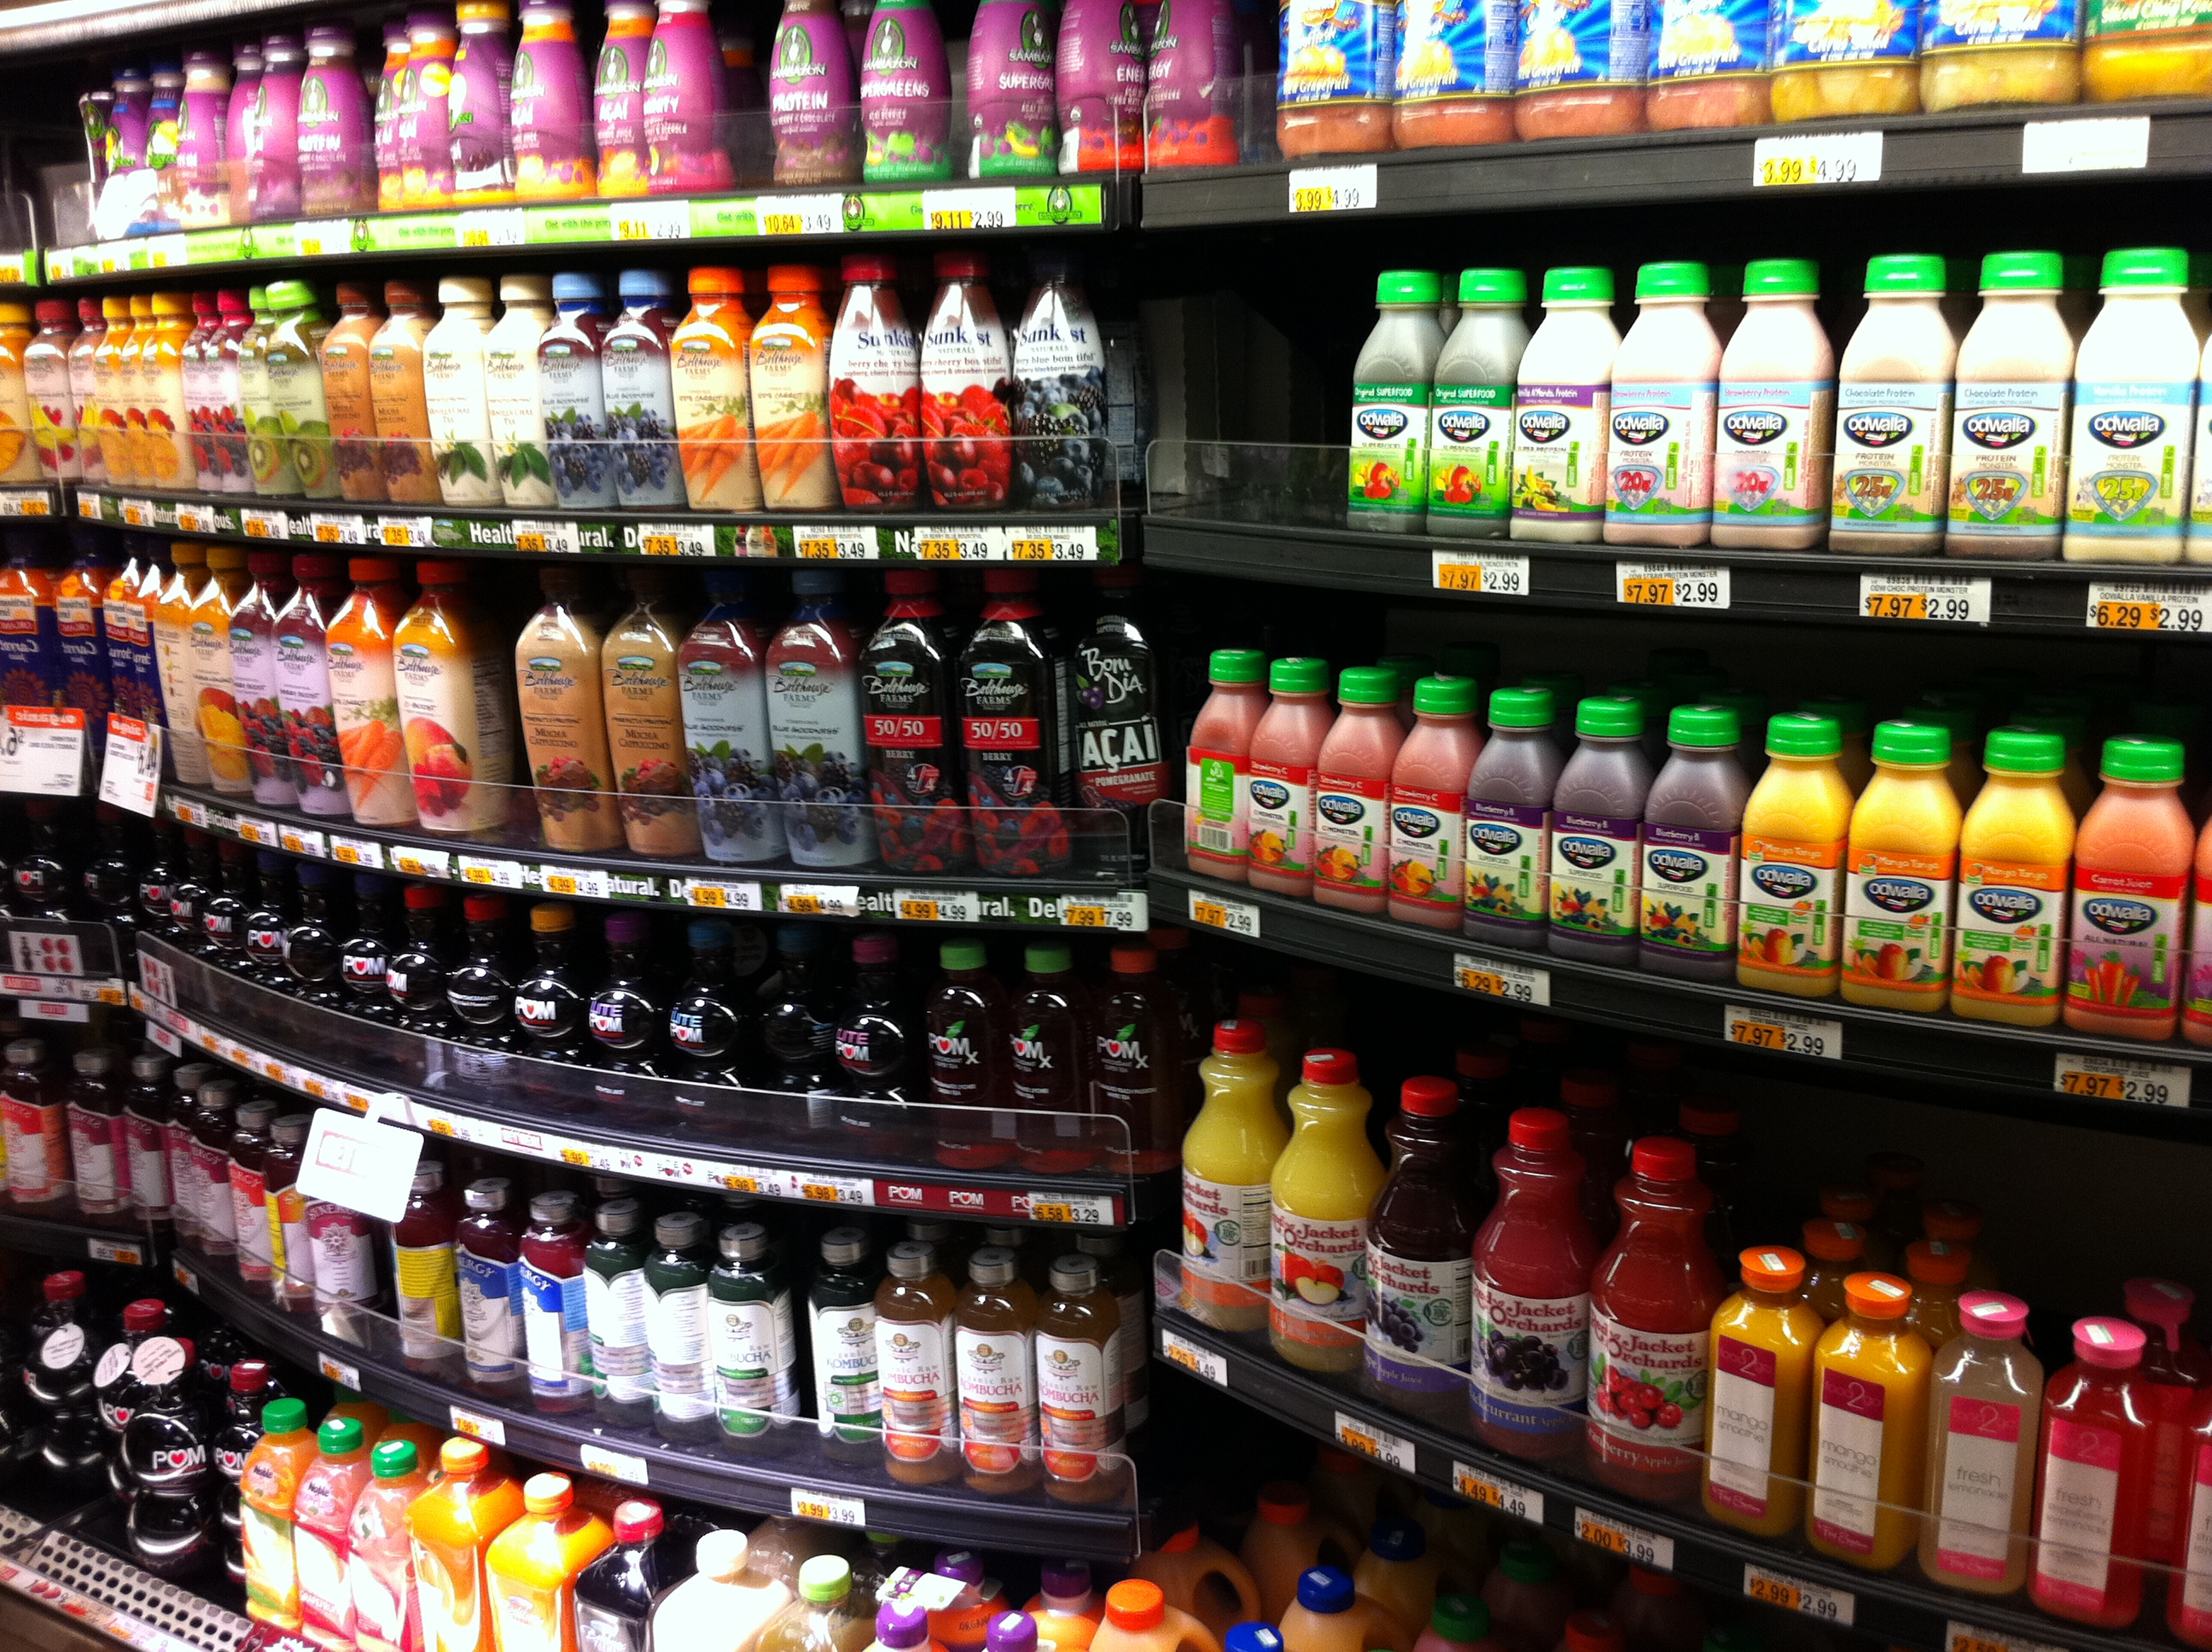 juice-display-at-nyc-grocery-store